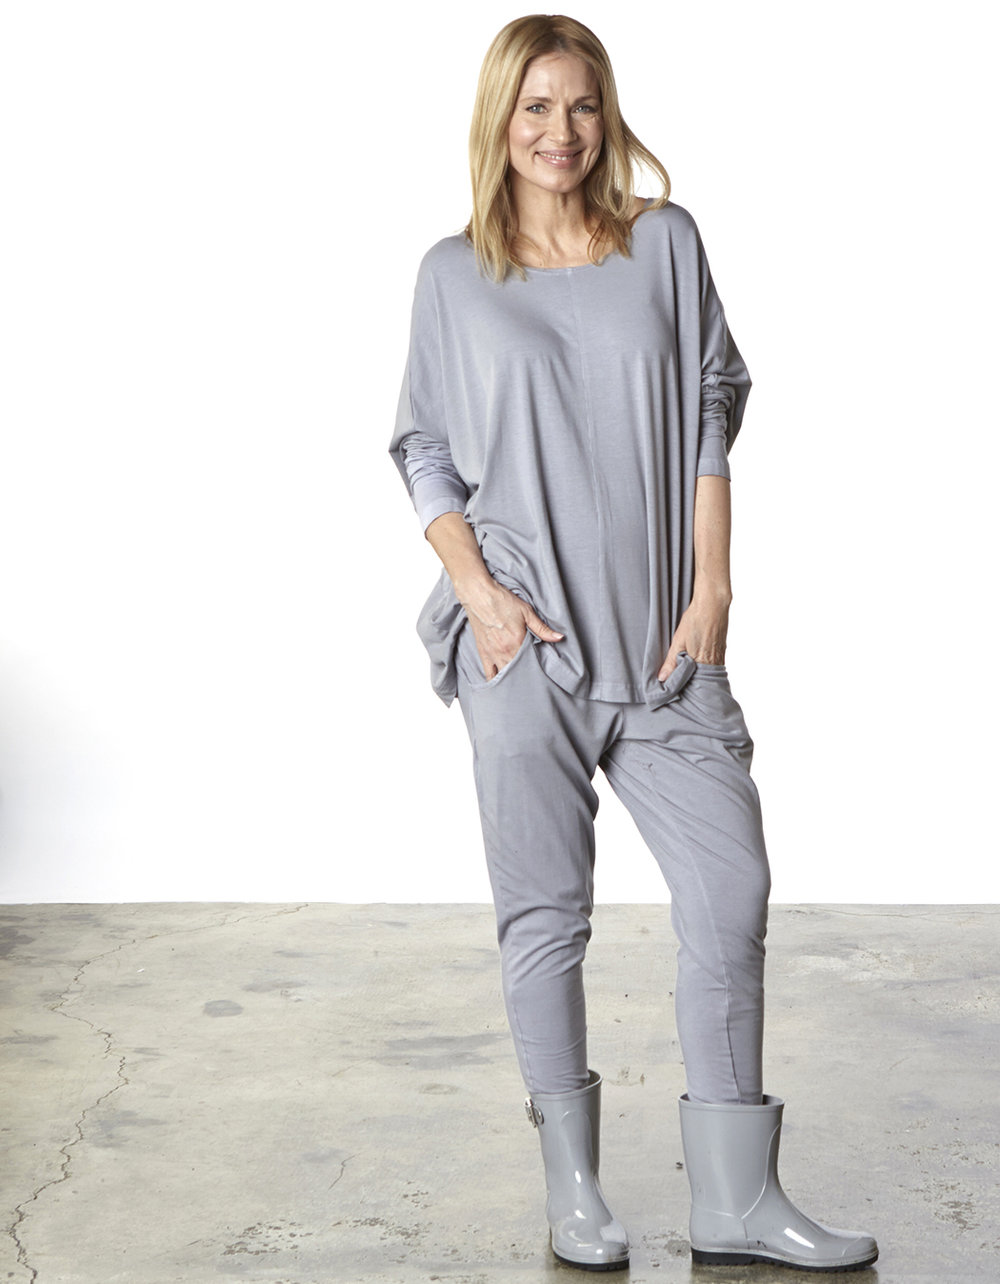 Alan Tunic, Cargo Pant in Jetty Organic Bamboo Cotton